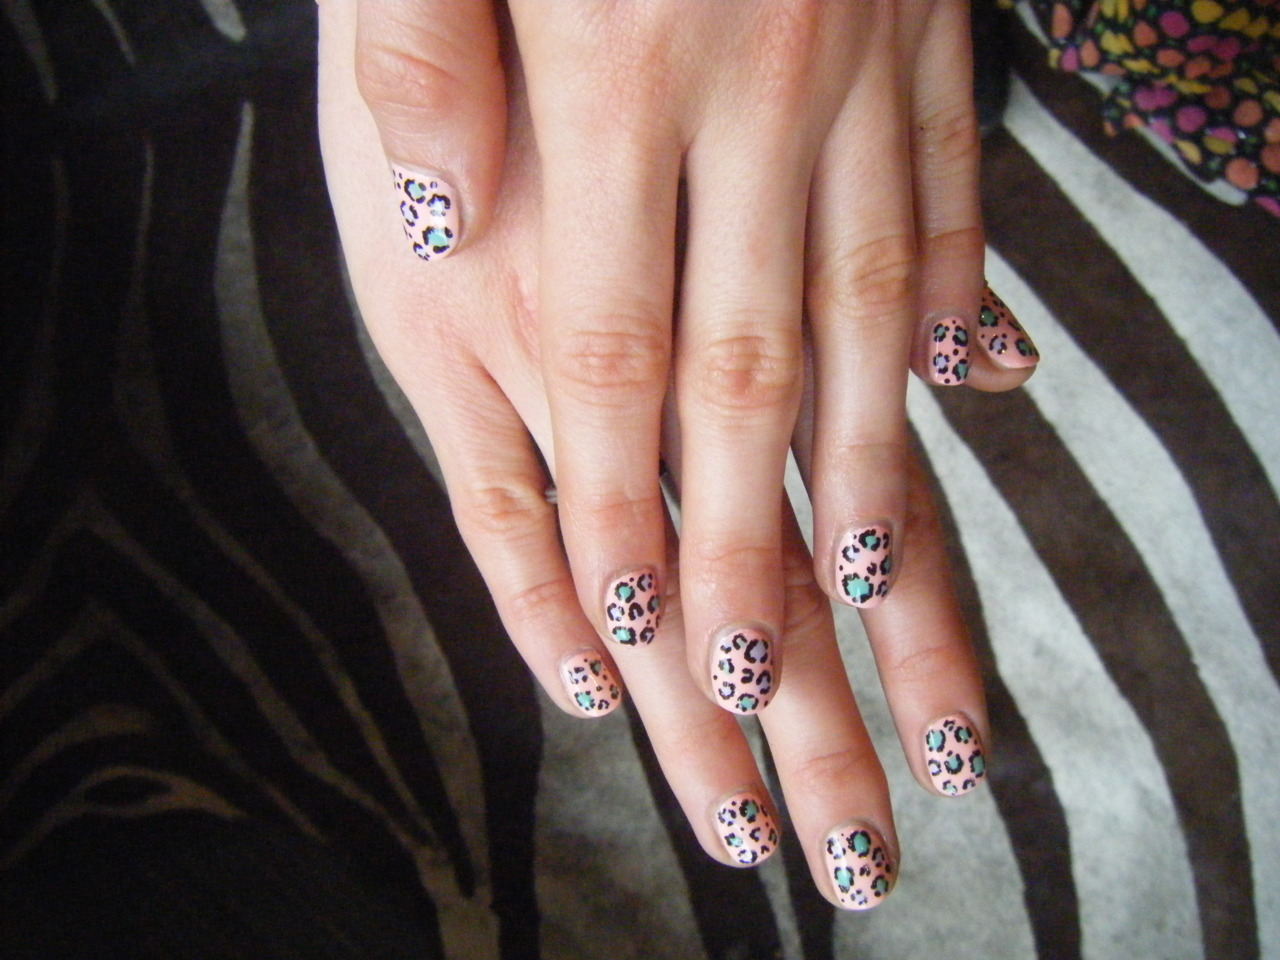 Spring Leopard Manicure | ReadyMade Oh my gosh, this is the cutest manicure I've ever seen! And it's DIY! The summery colours and modern design totally get me. I think I need to guy and buy some of those manicure pens now so I can do this.